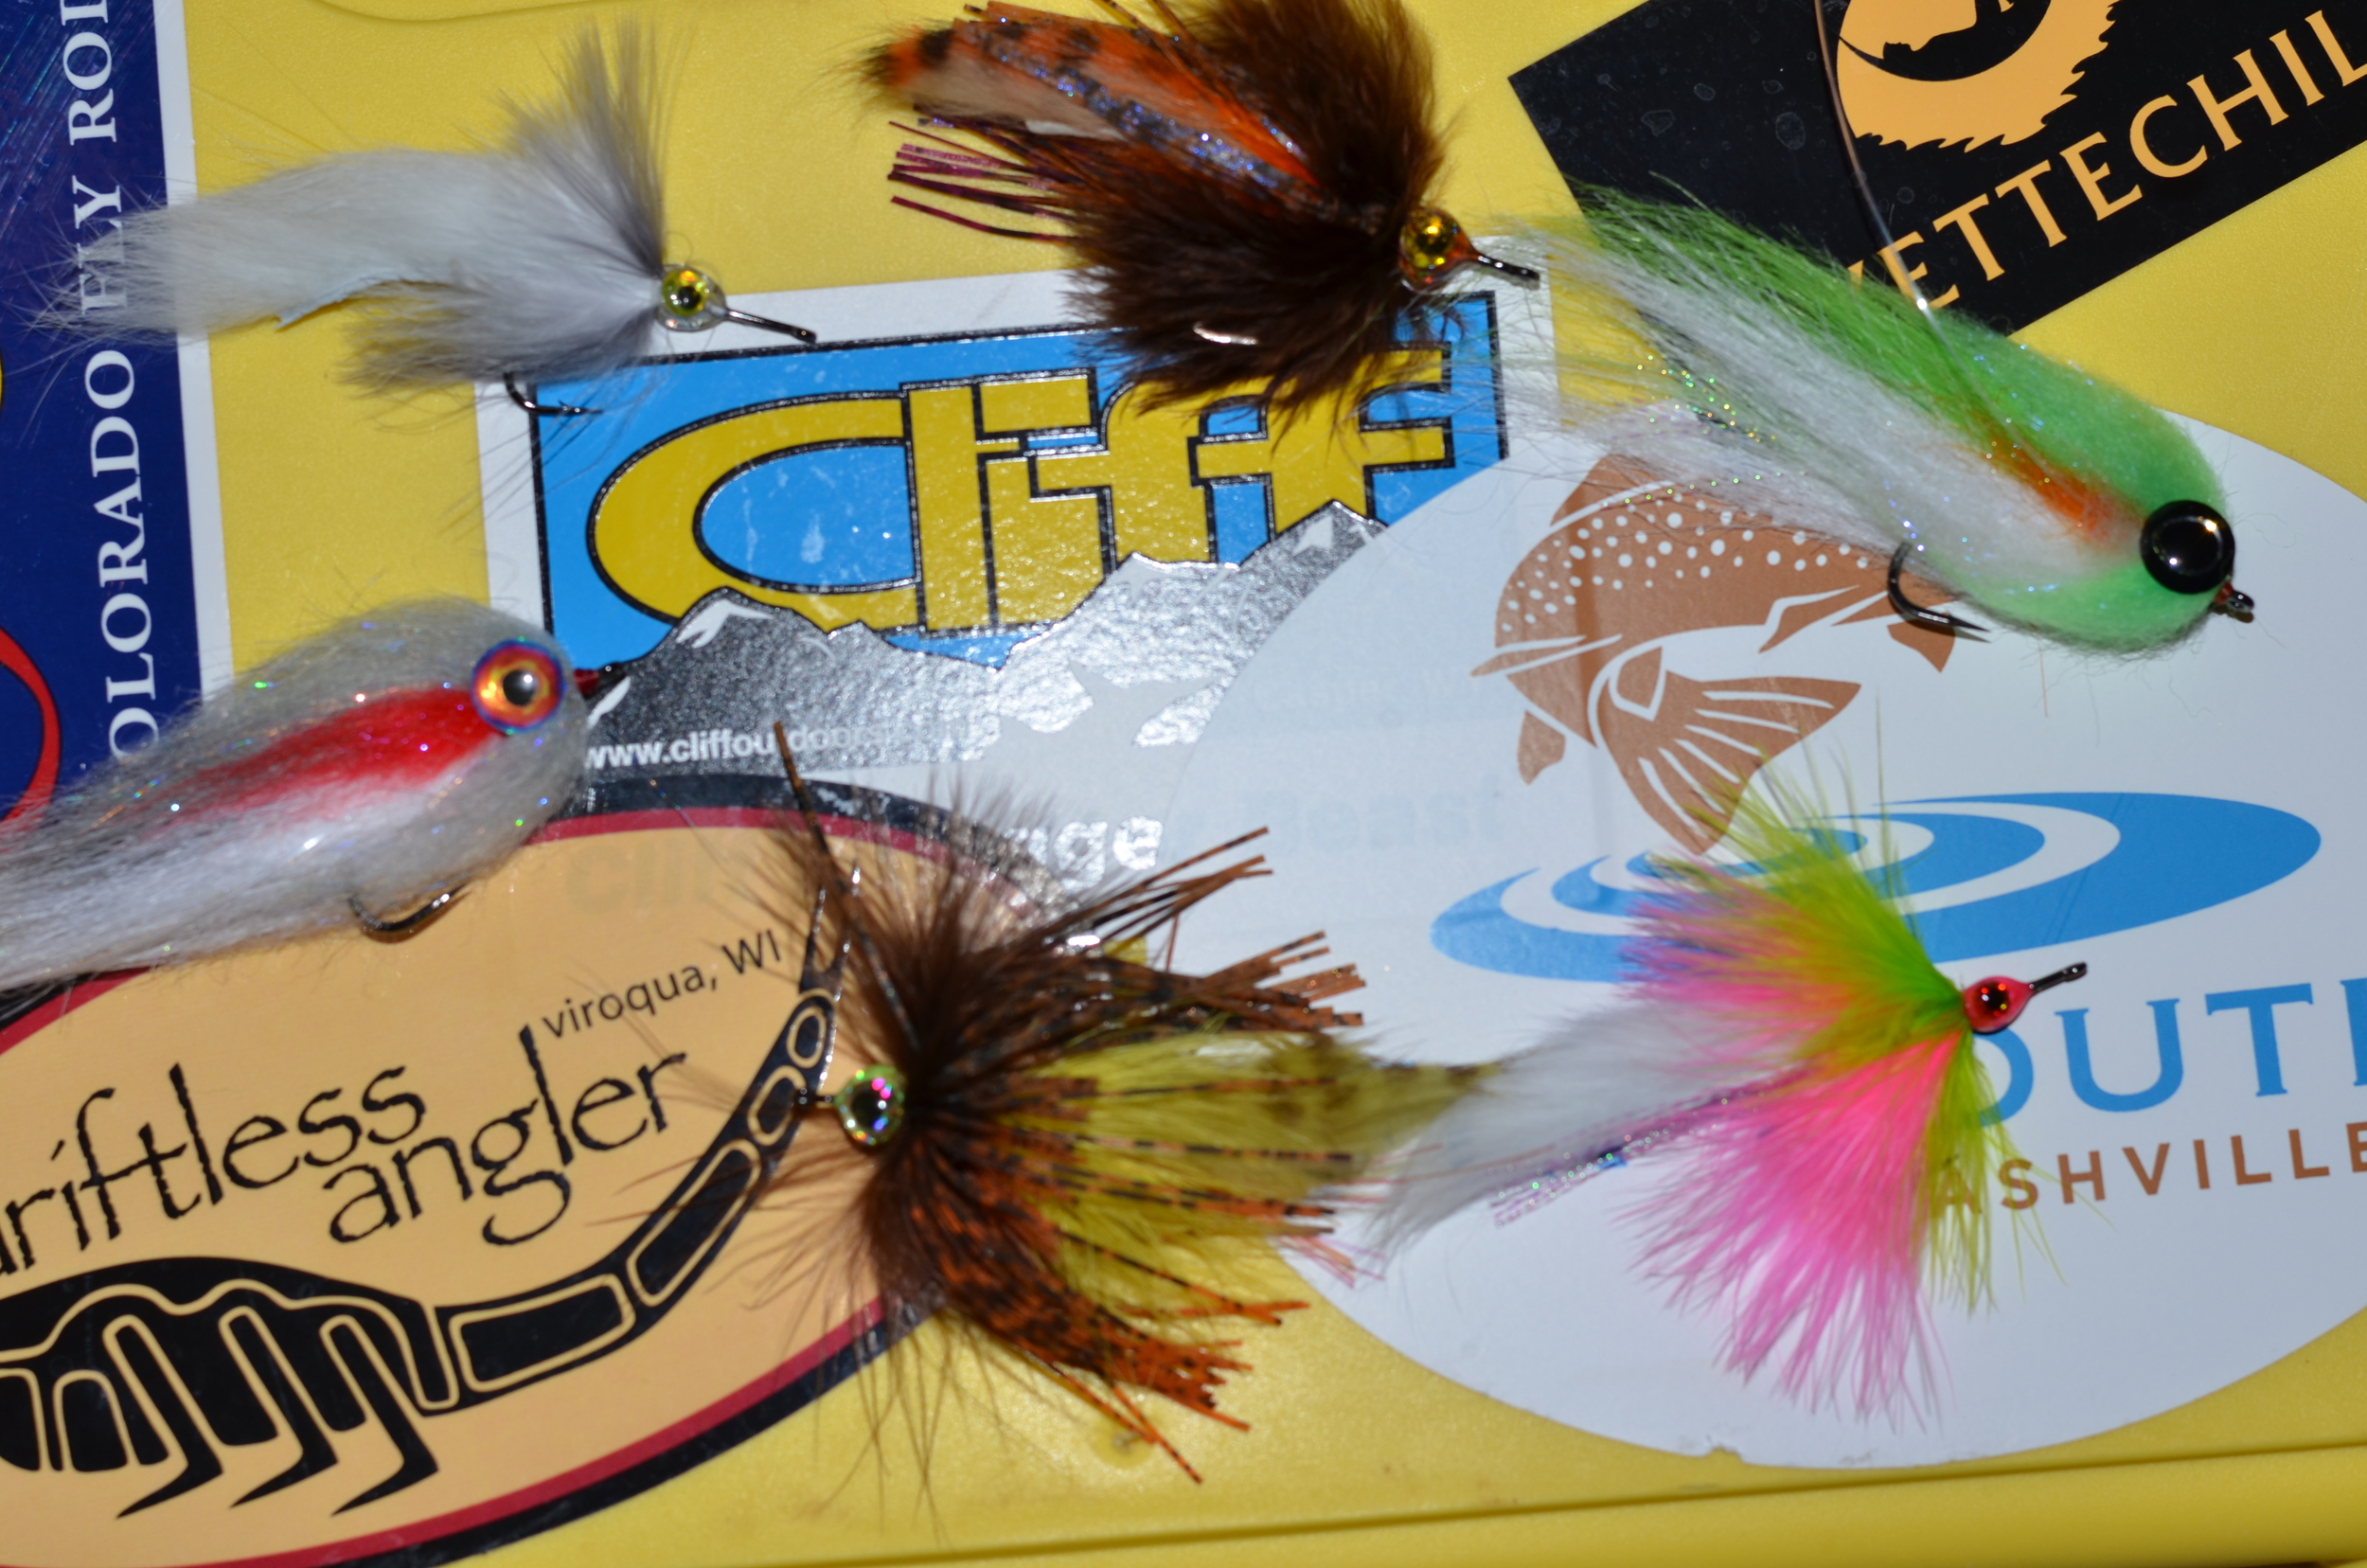 The flies that will be raffled off this Saturday. A couple Lot Lizards, Maddy's Minnows, and Single Bunnies. All tying instructions are on the site.